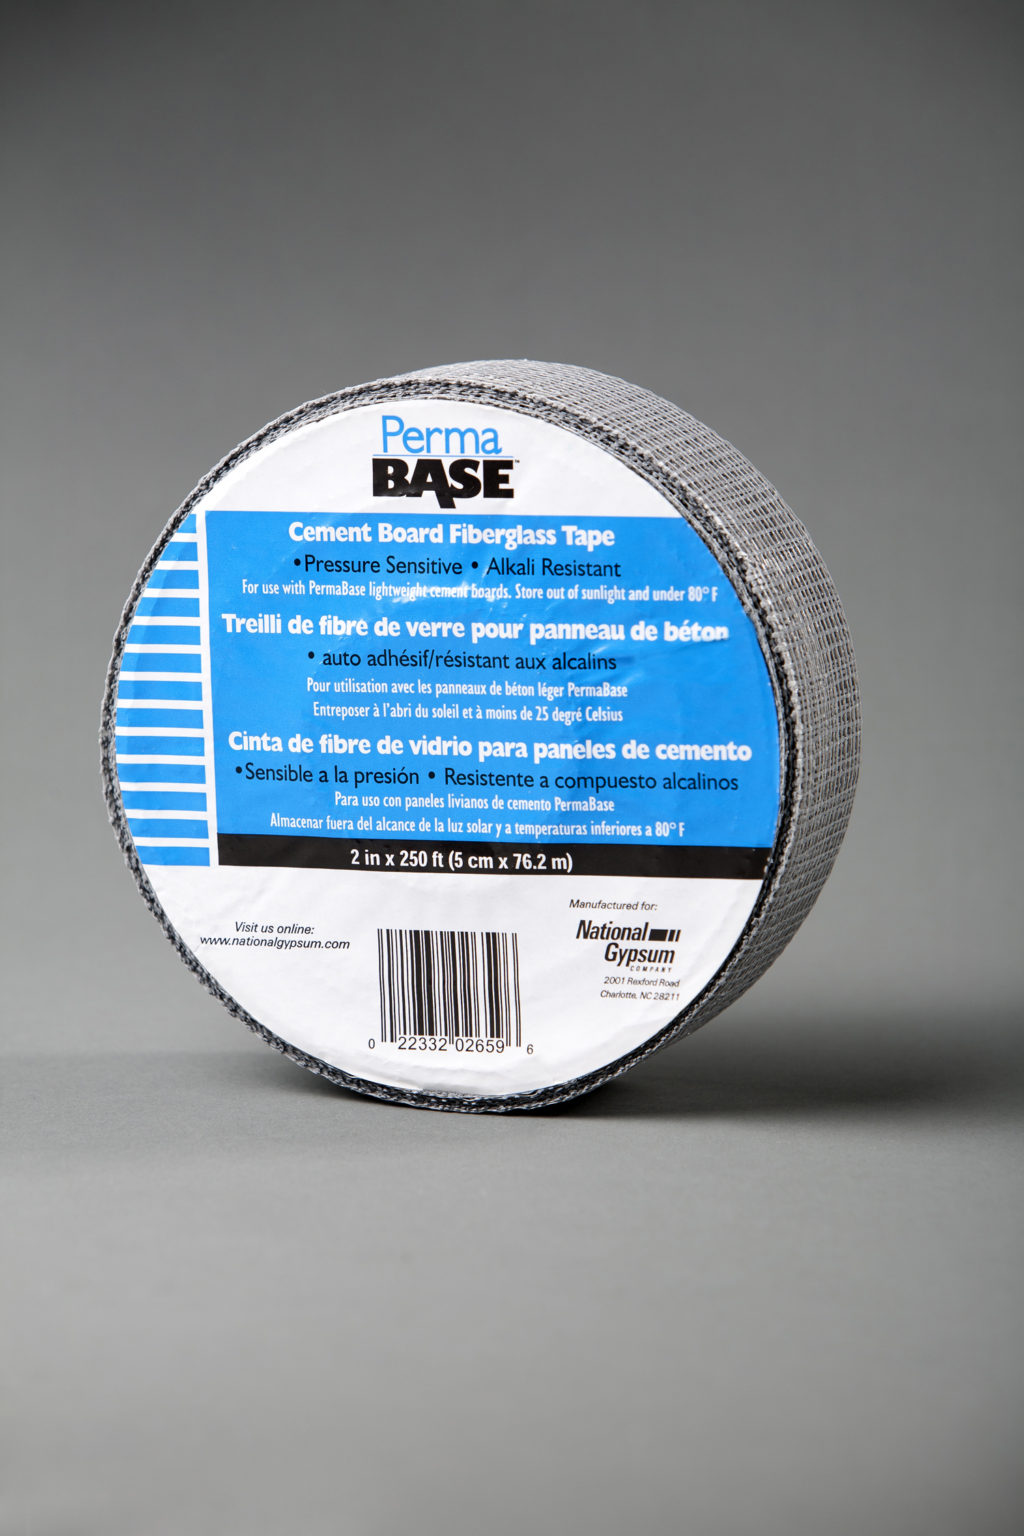 Perma Base® Cement Board Fiberglass Tape